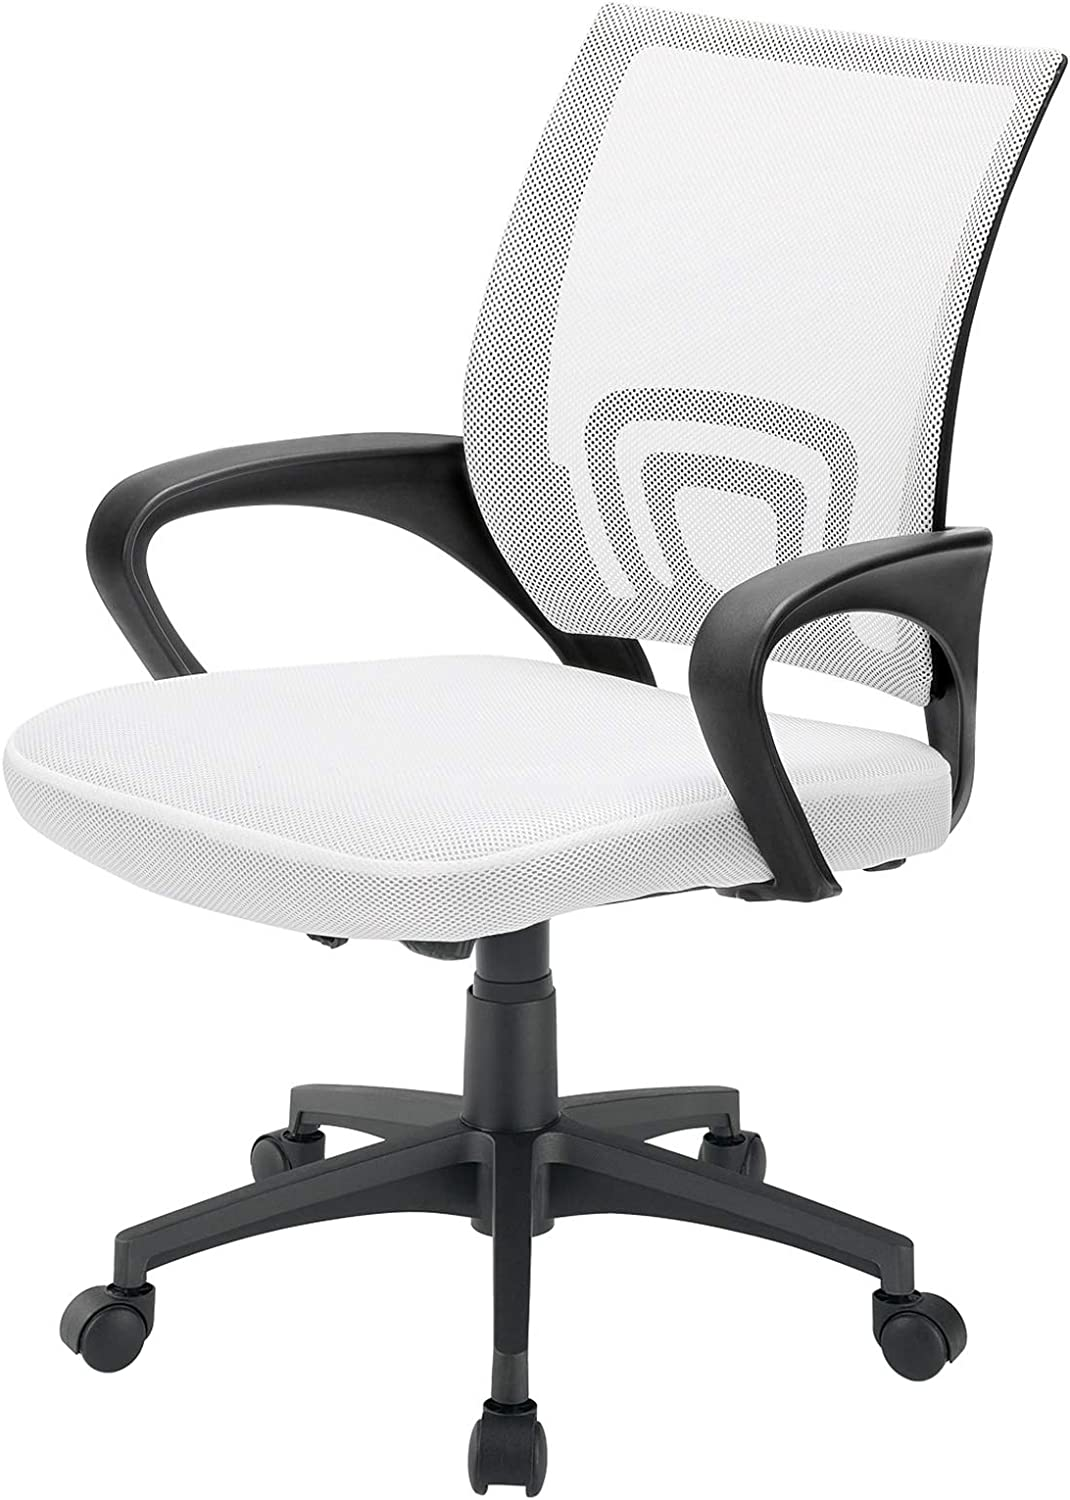 BOSSIN Office Chair Mesh Desk Chair Ergonomic Computer Chair with Lumbar Support Modern Executive Adjustable Chair Rolling Swivel Chairs for Women Men,Black (White)